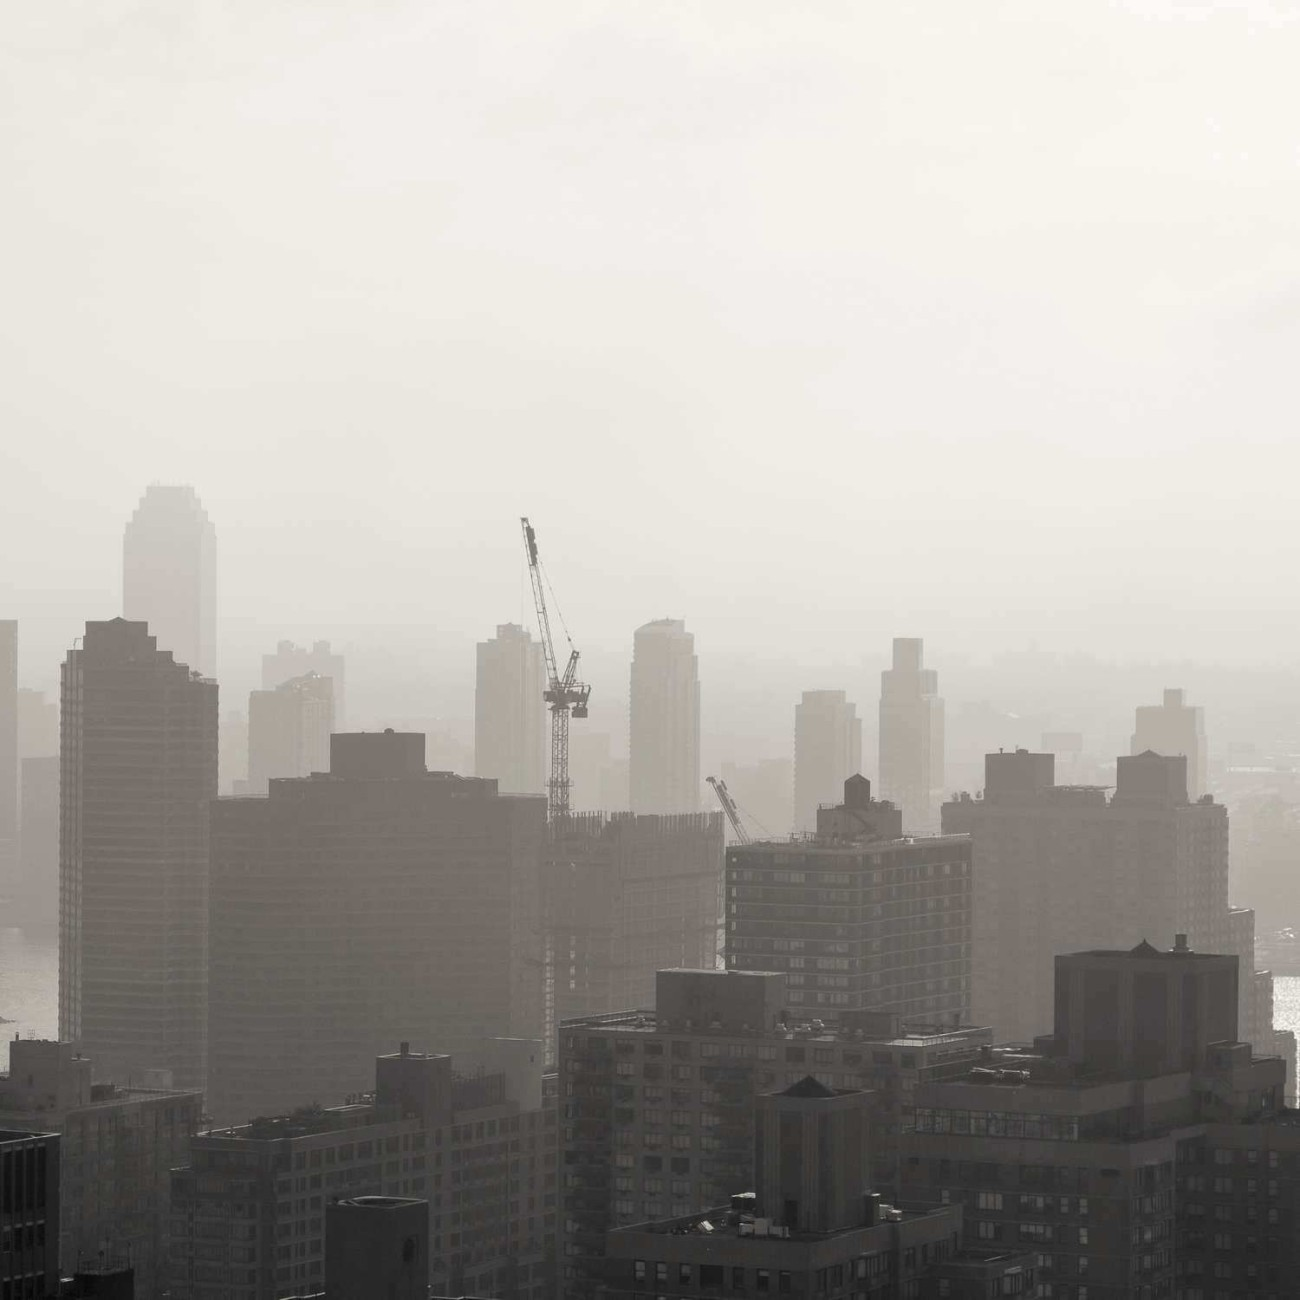 Morning haze along the East River, NY, 2015